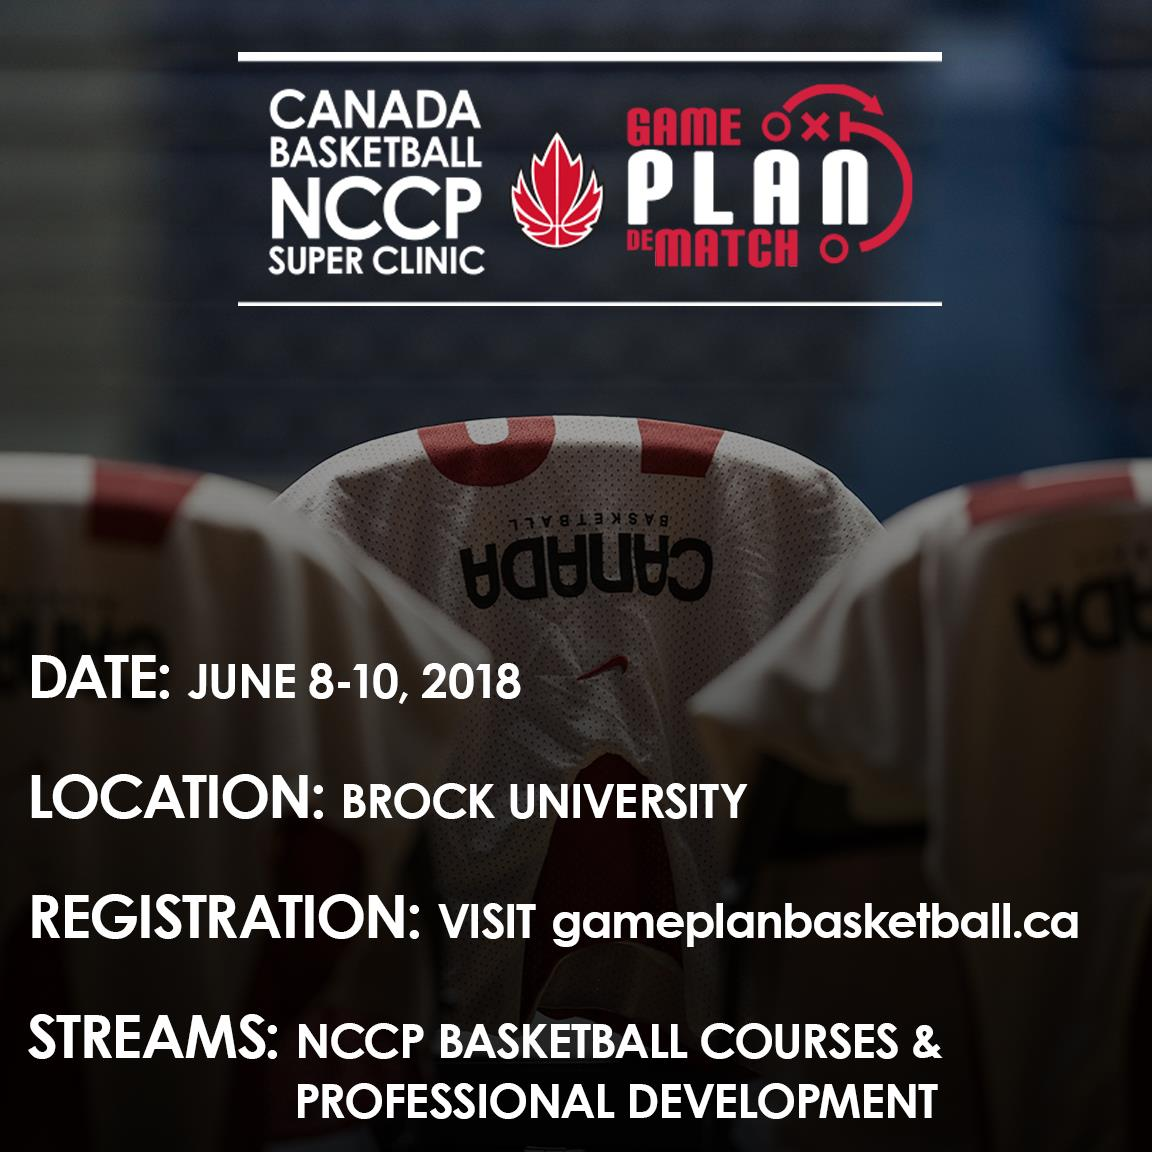 Canada Basketball Super Clinic 2018 set for June 8th-10th, 2018 at Brock University